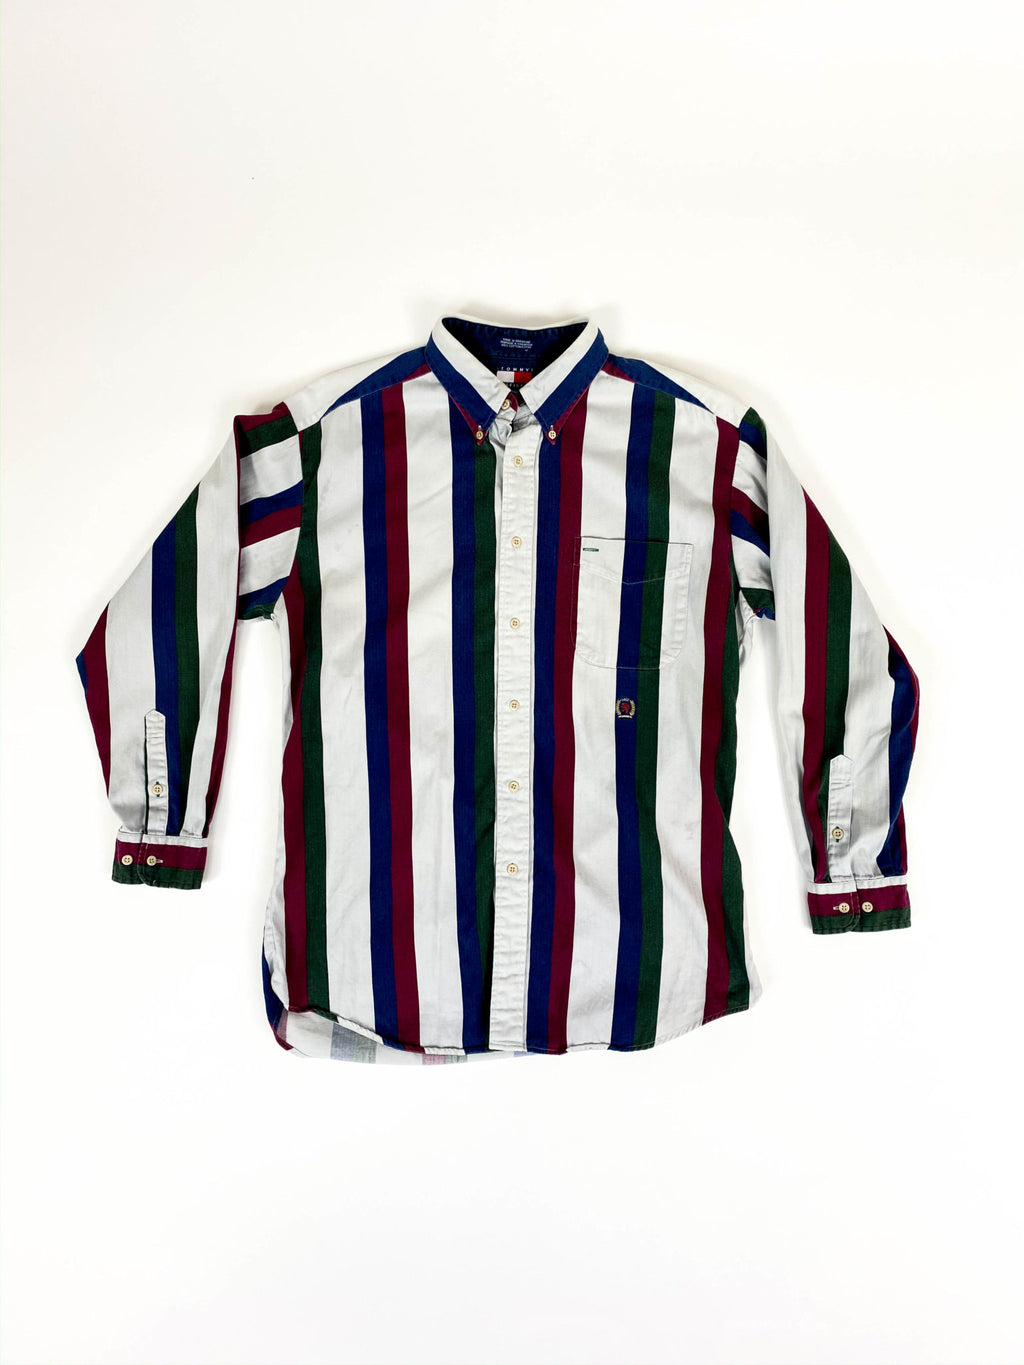 Vintage Striped Tommy Hilfiger Lion Crest Shirt / Size L